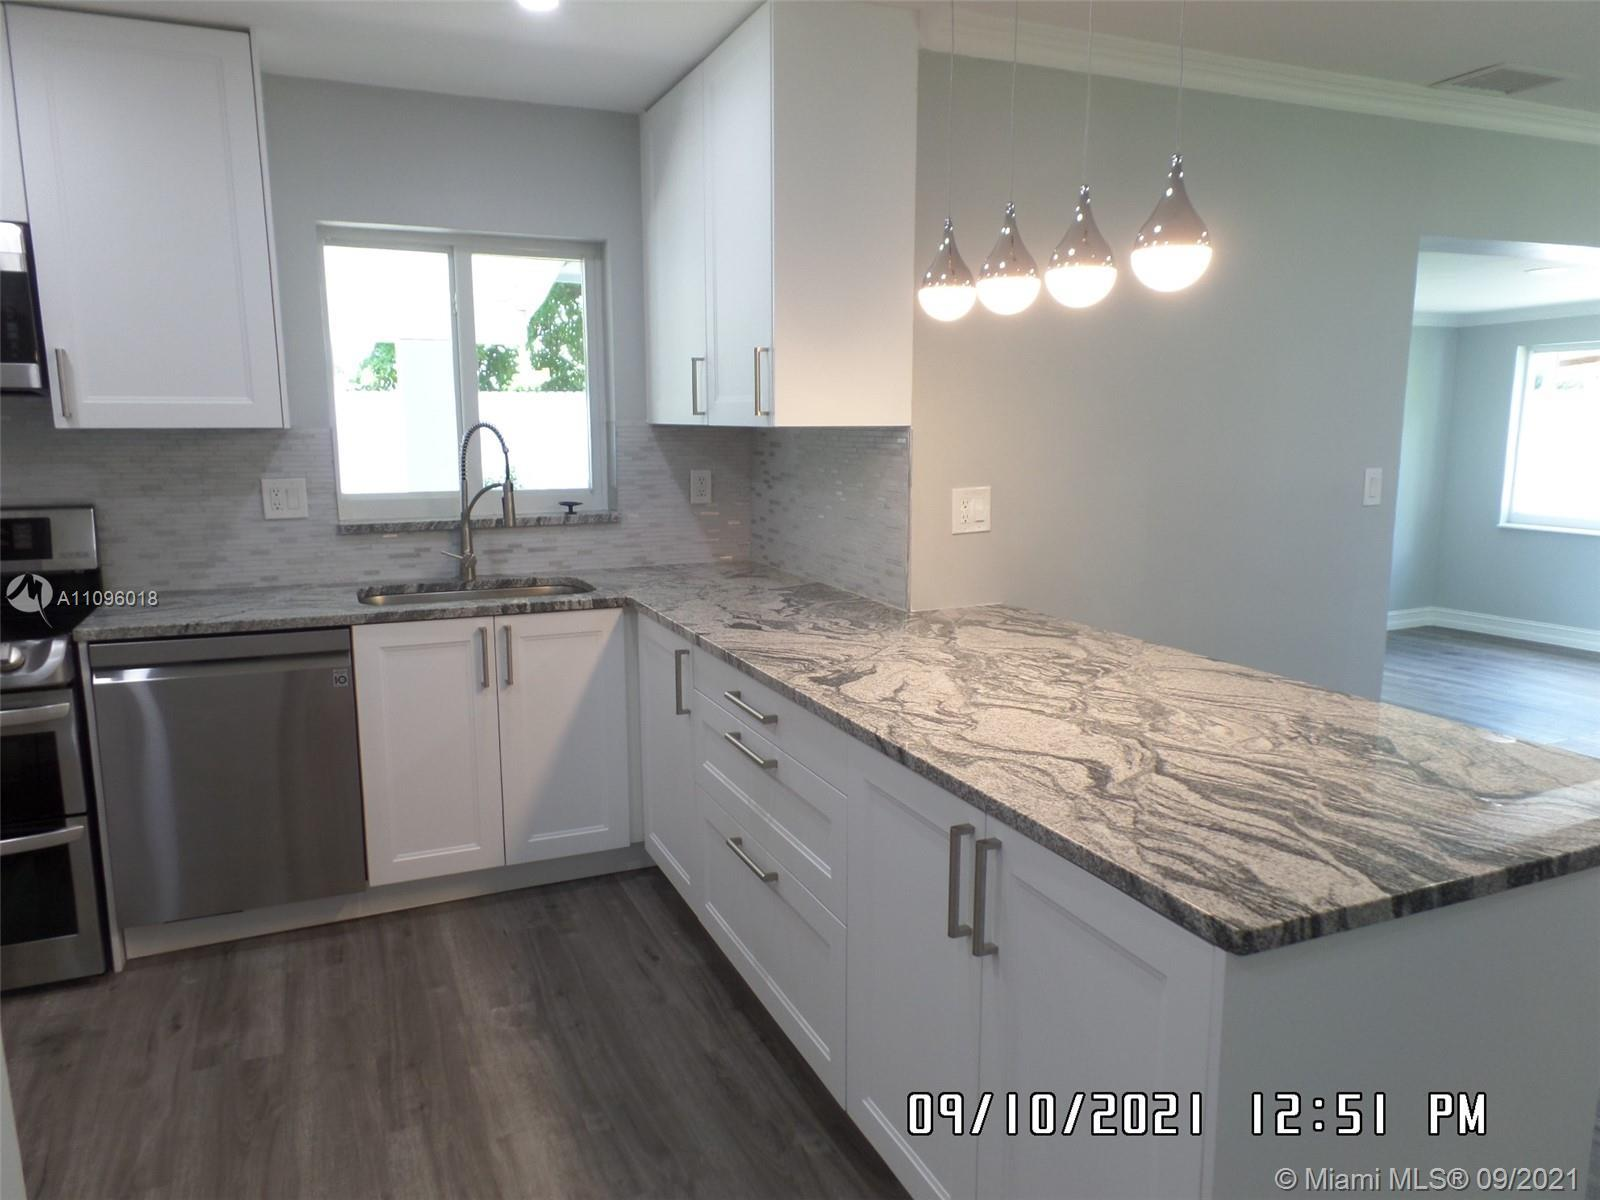 Totally renovated spacious 3/2 in sought after area. Open kitchen with granite countertops and stain